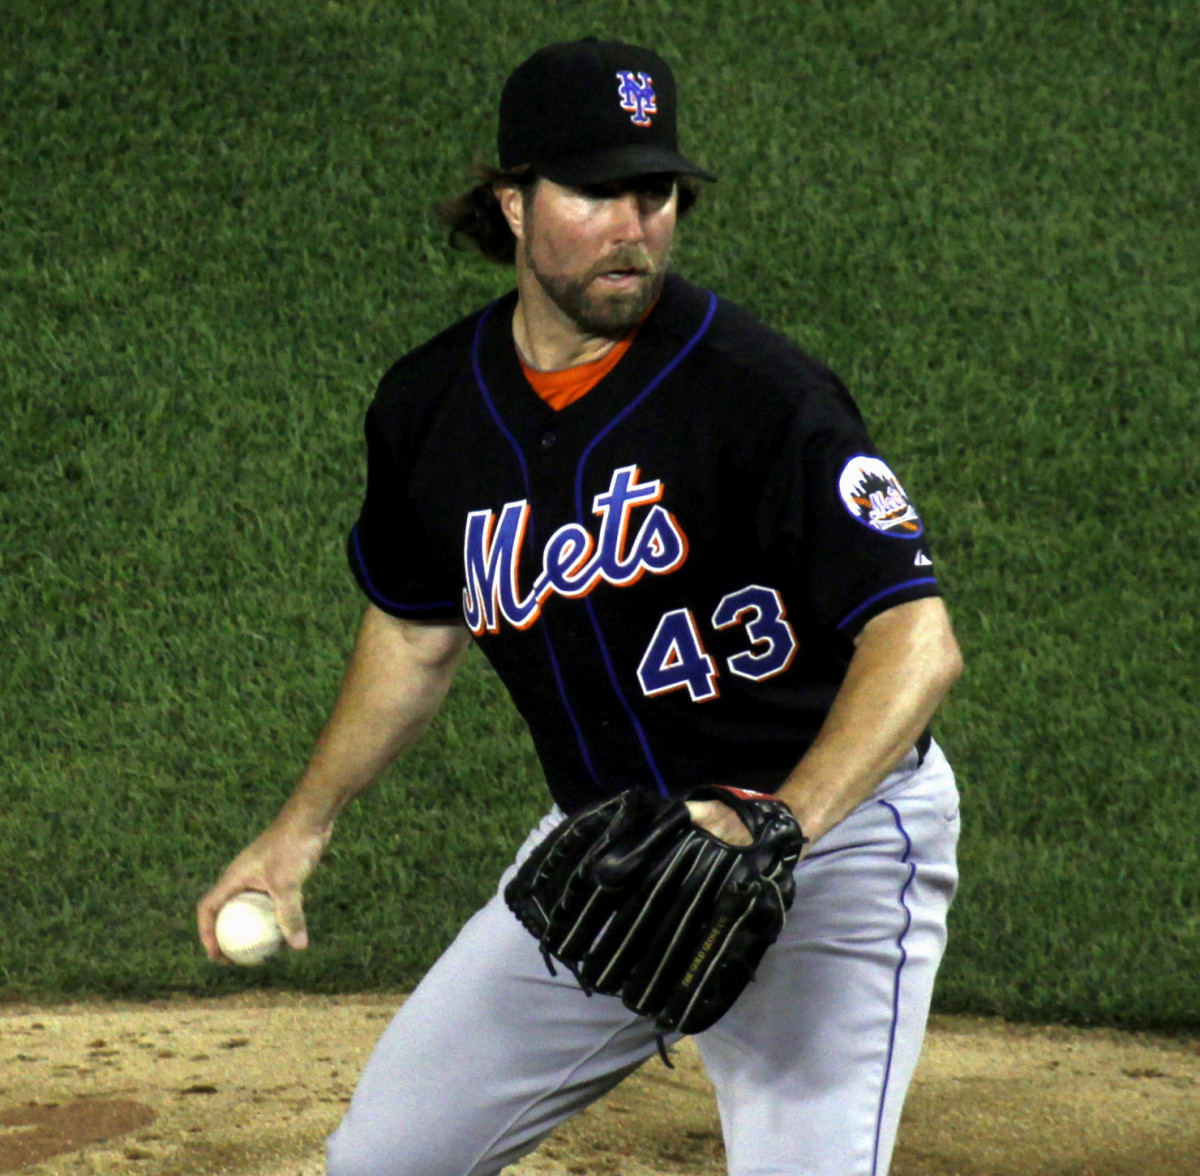 2012 Cy Young Award Winner: R.A. Dickey